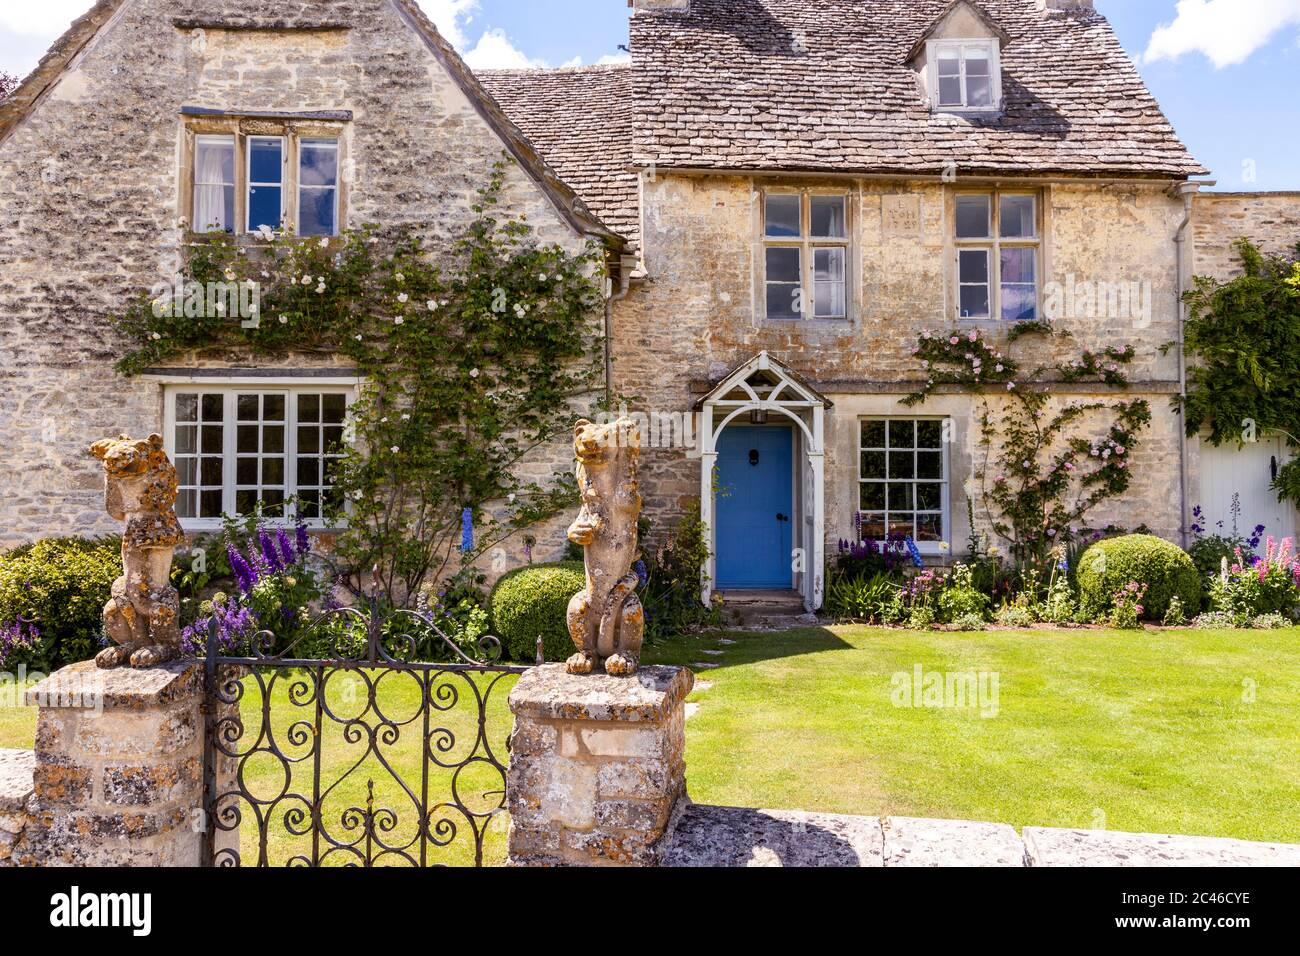 A typical old stone house in the Coln Valley in the Cotswold village of Winson, Gloucestershire UK Stock Photo